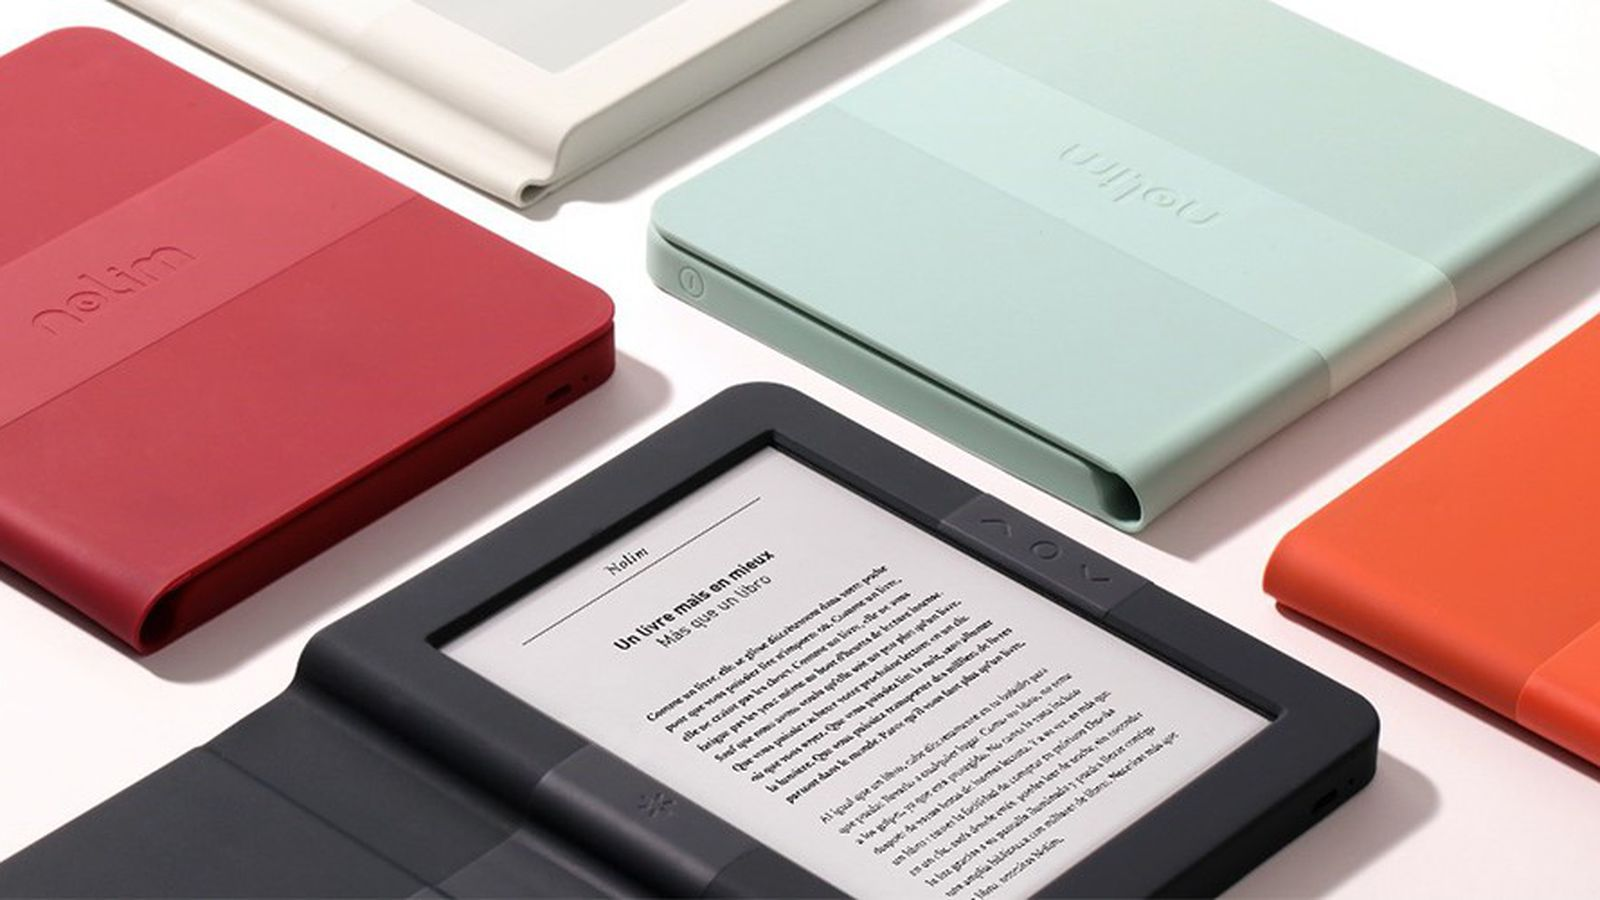 photo image Here's a French e-reader with colorful smart cases and a square shape